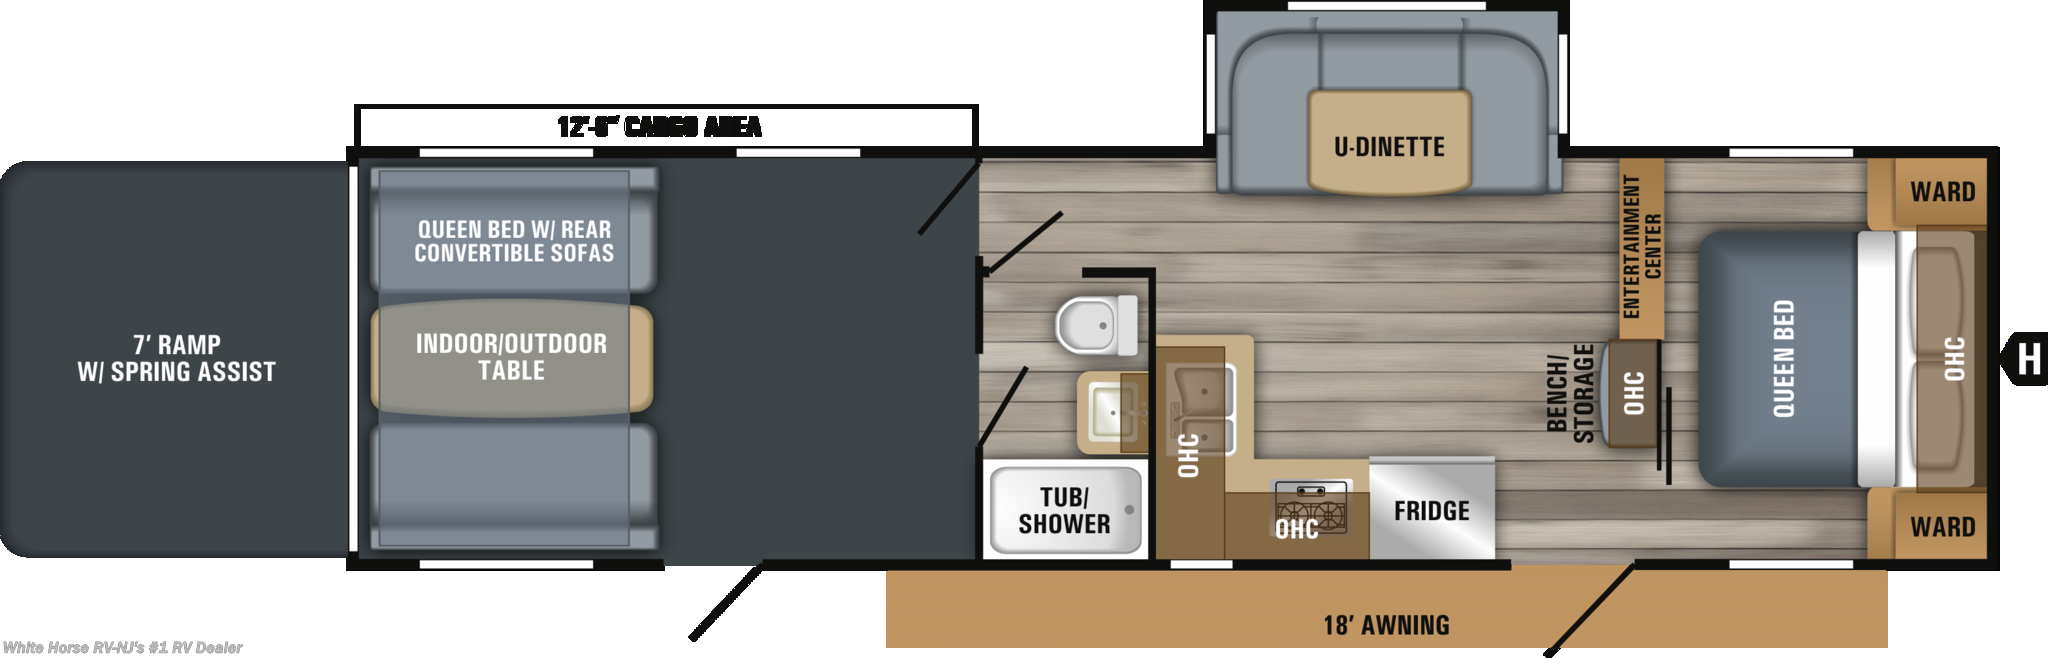 Oc1947737 2019 Jayco Octane Zx Super Lite 293 Front Qb W U Dinette 2006 Pace Arrow Slide Out Wiring Diagram Next